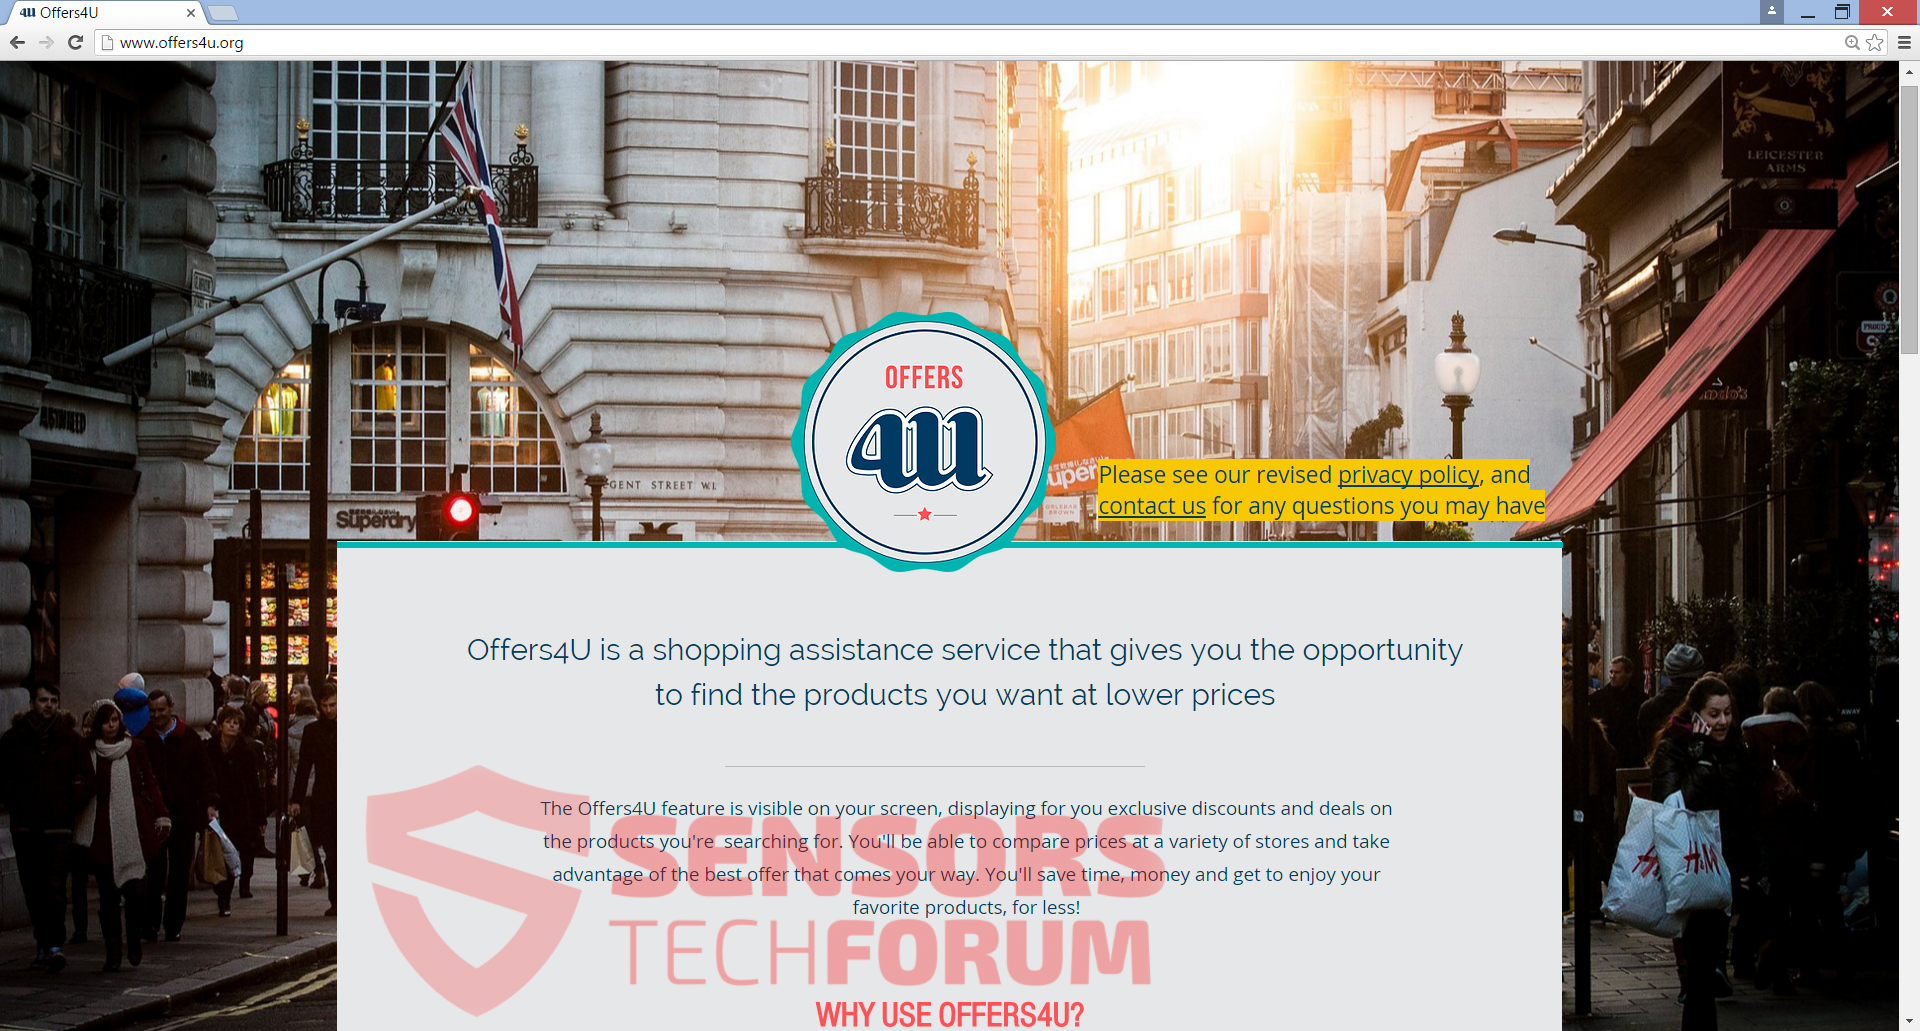 SensorsTechForum-offers4u-offers4u-ufficiale-site-main-page